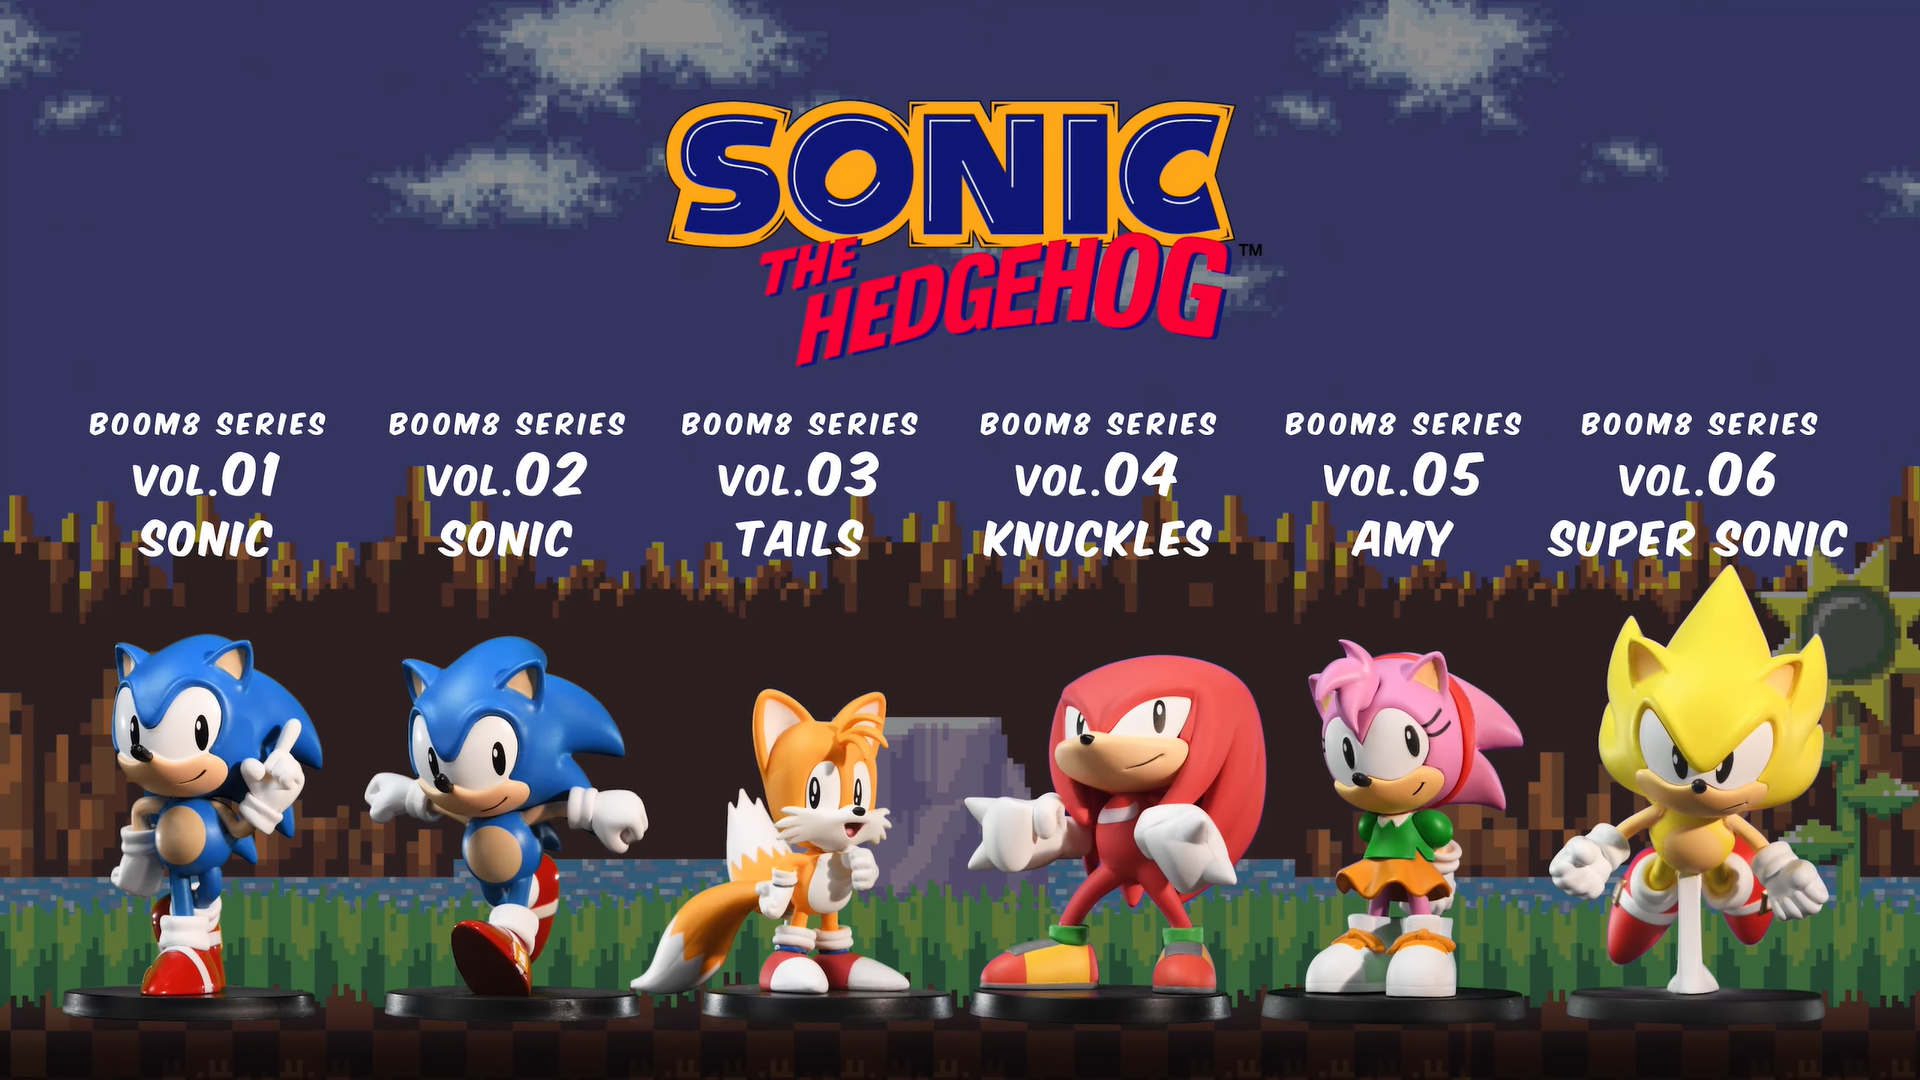 First 4 Figures Sonic The Hedgehog Boom8 Series lineup